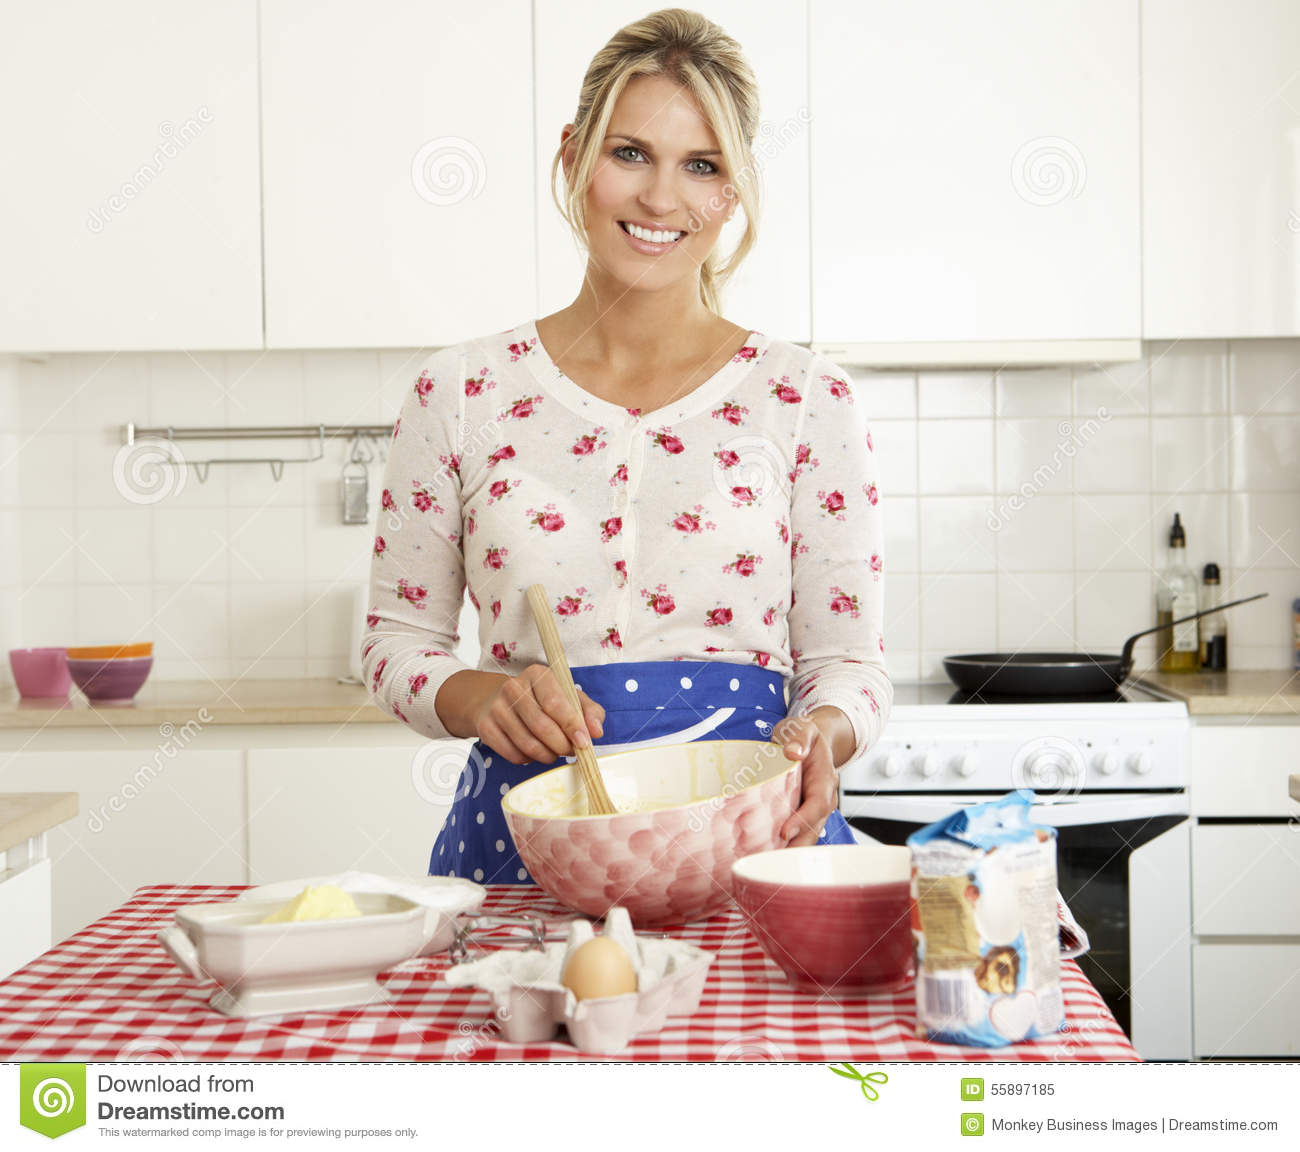 Women Kitchen: Woman Baking In Kitchen Stock Image. Image Of Cake